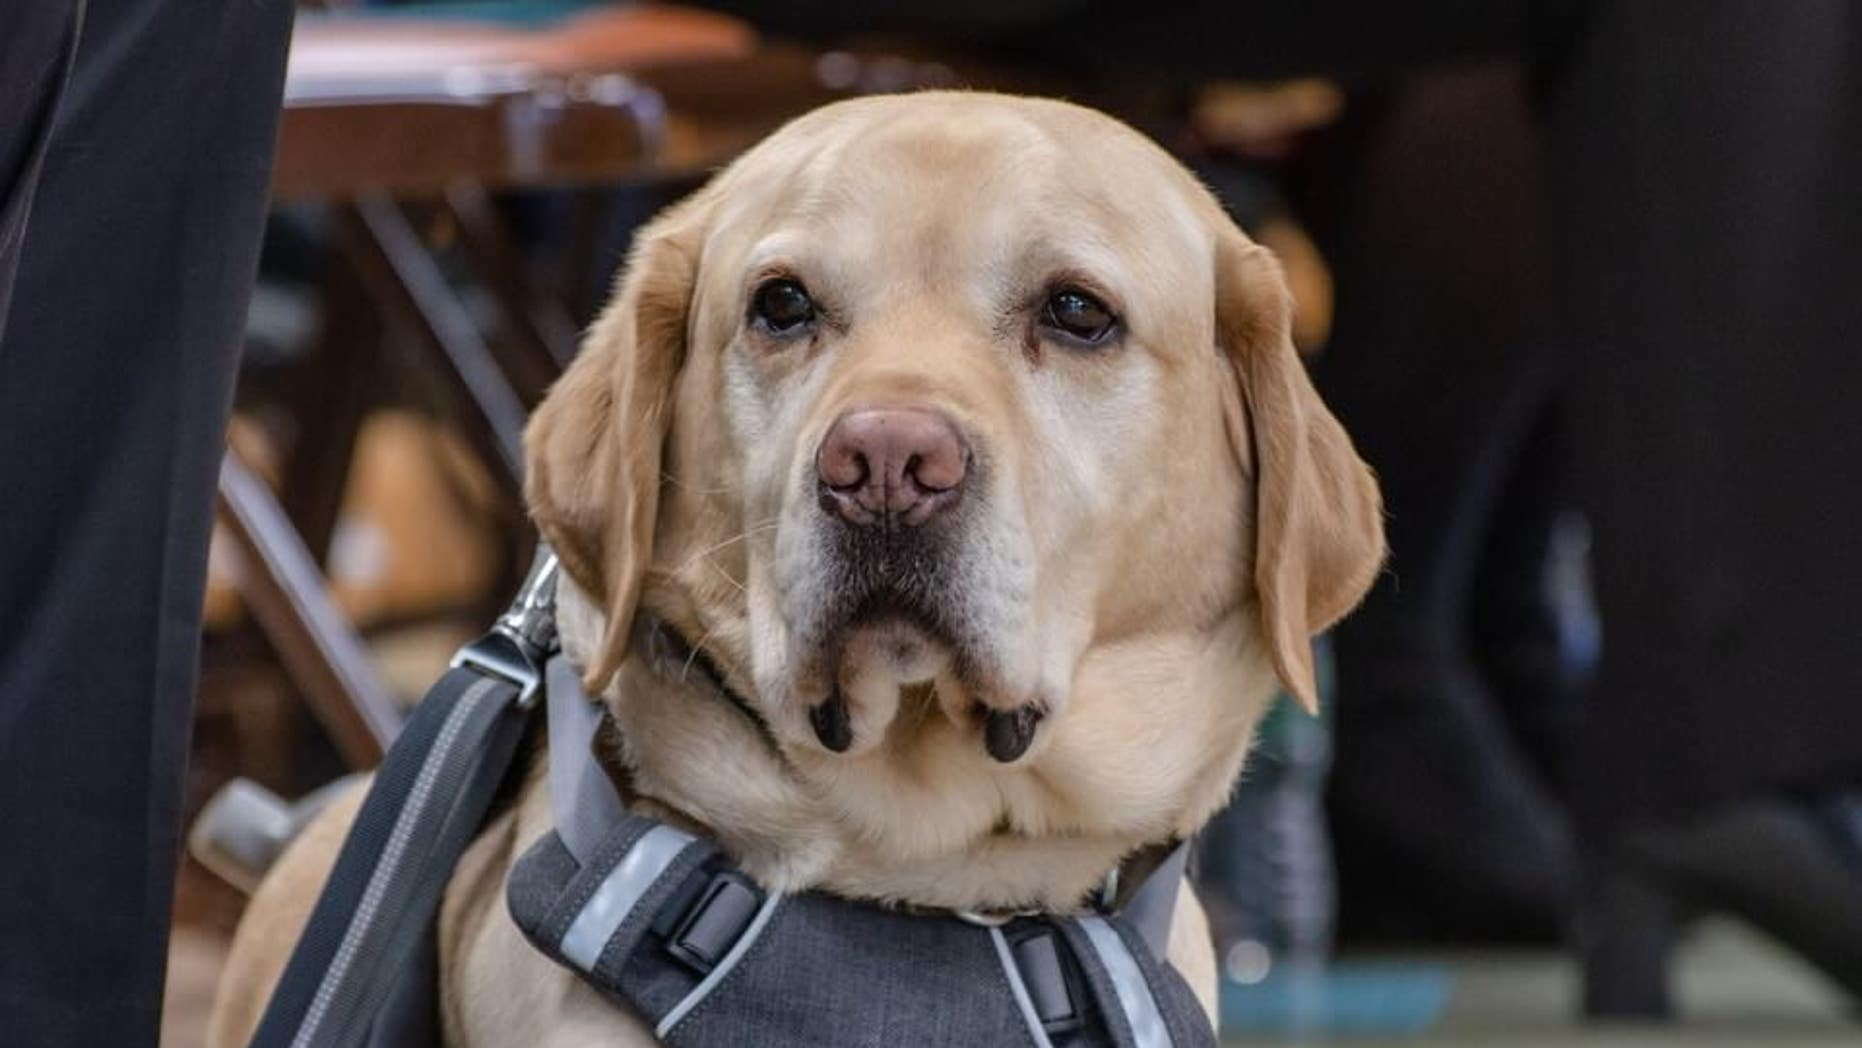 Gus, seen here, will run a NYC Half Marathon alongside Tom Panek, a CEO of Guiding Eyes for a Blind